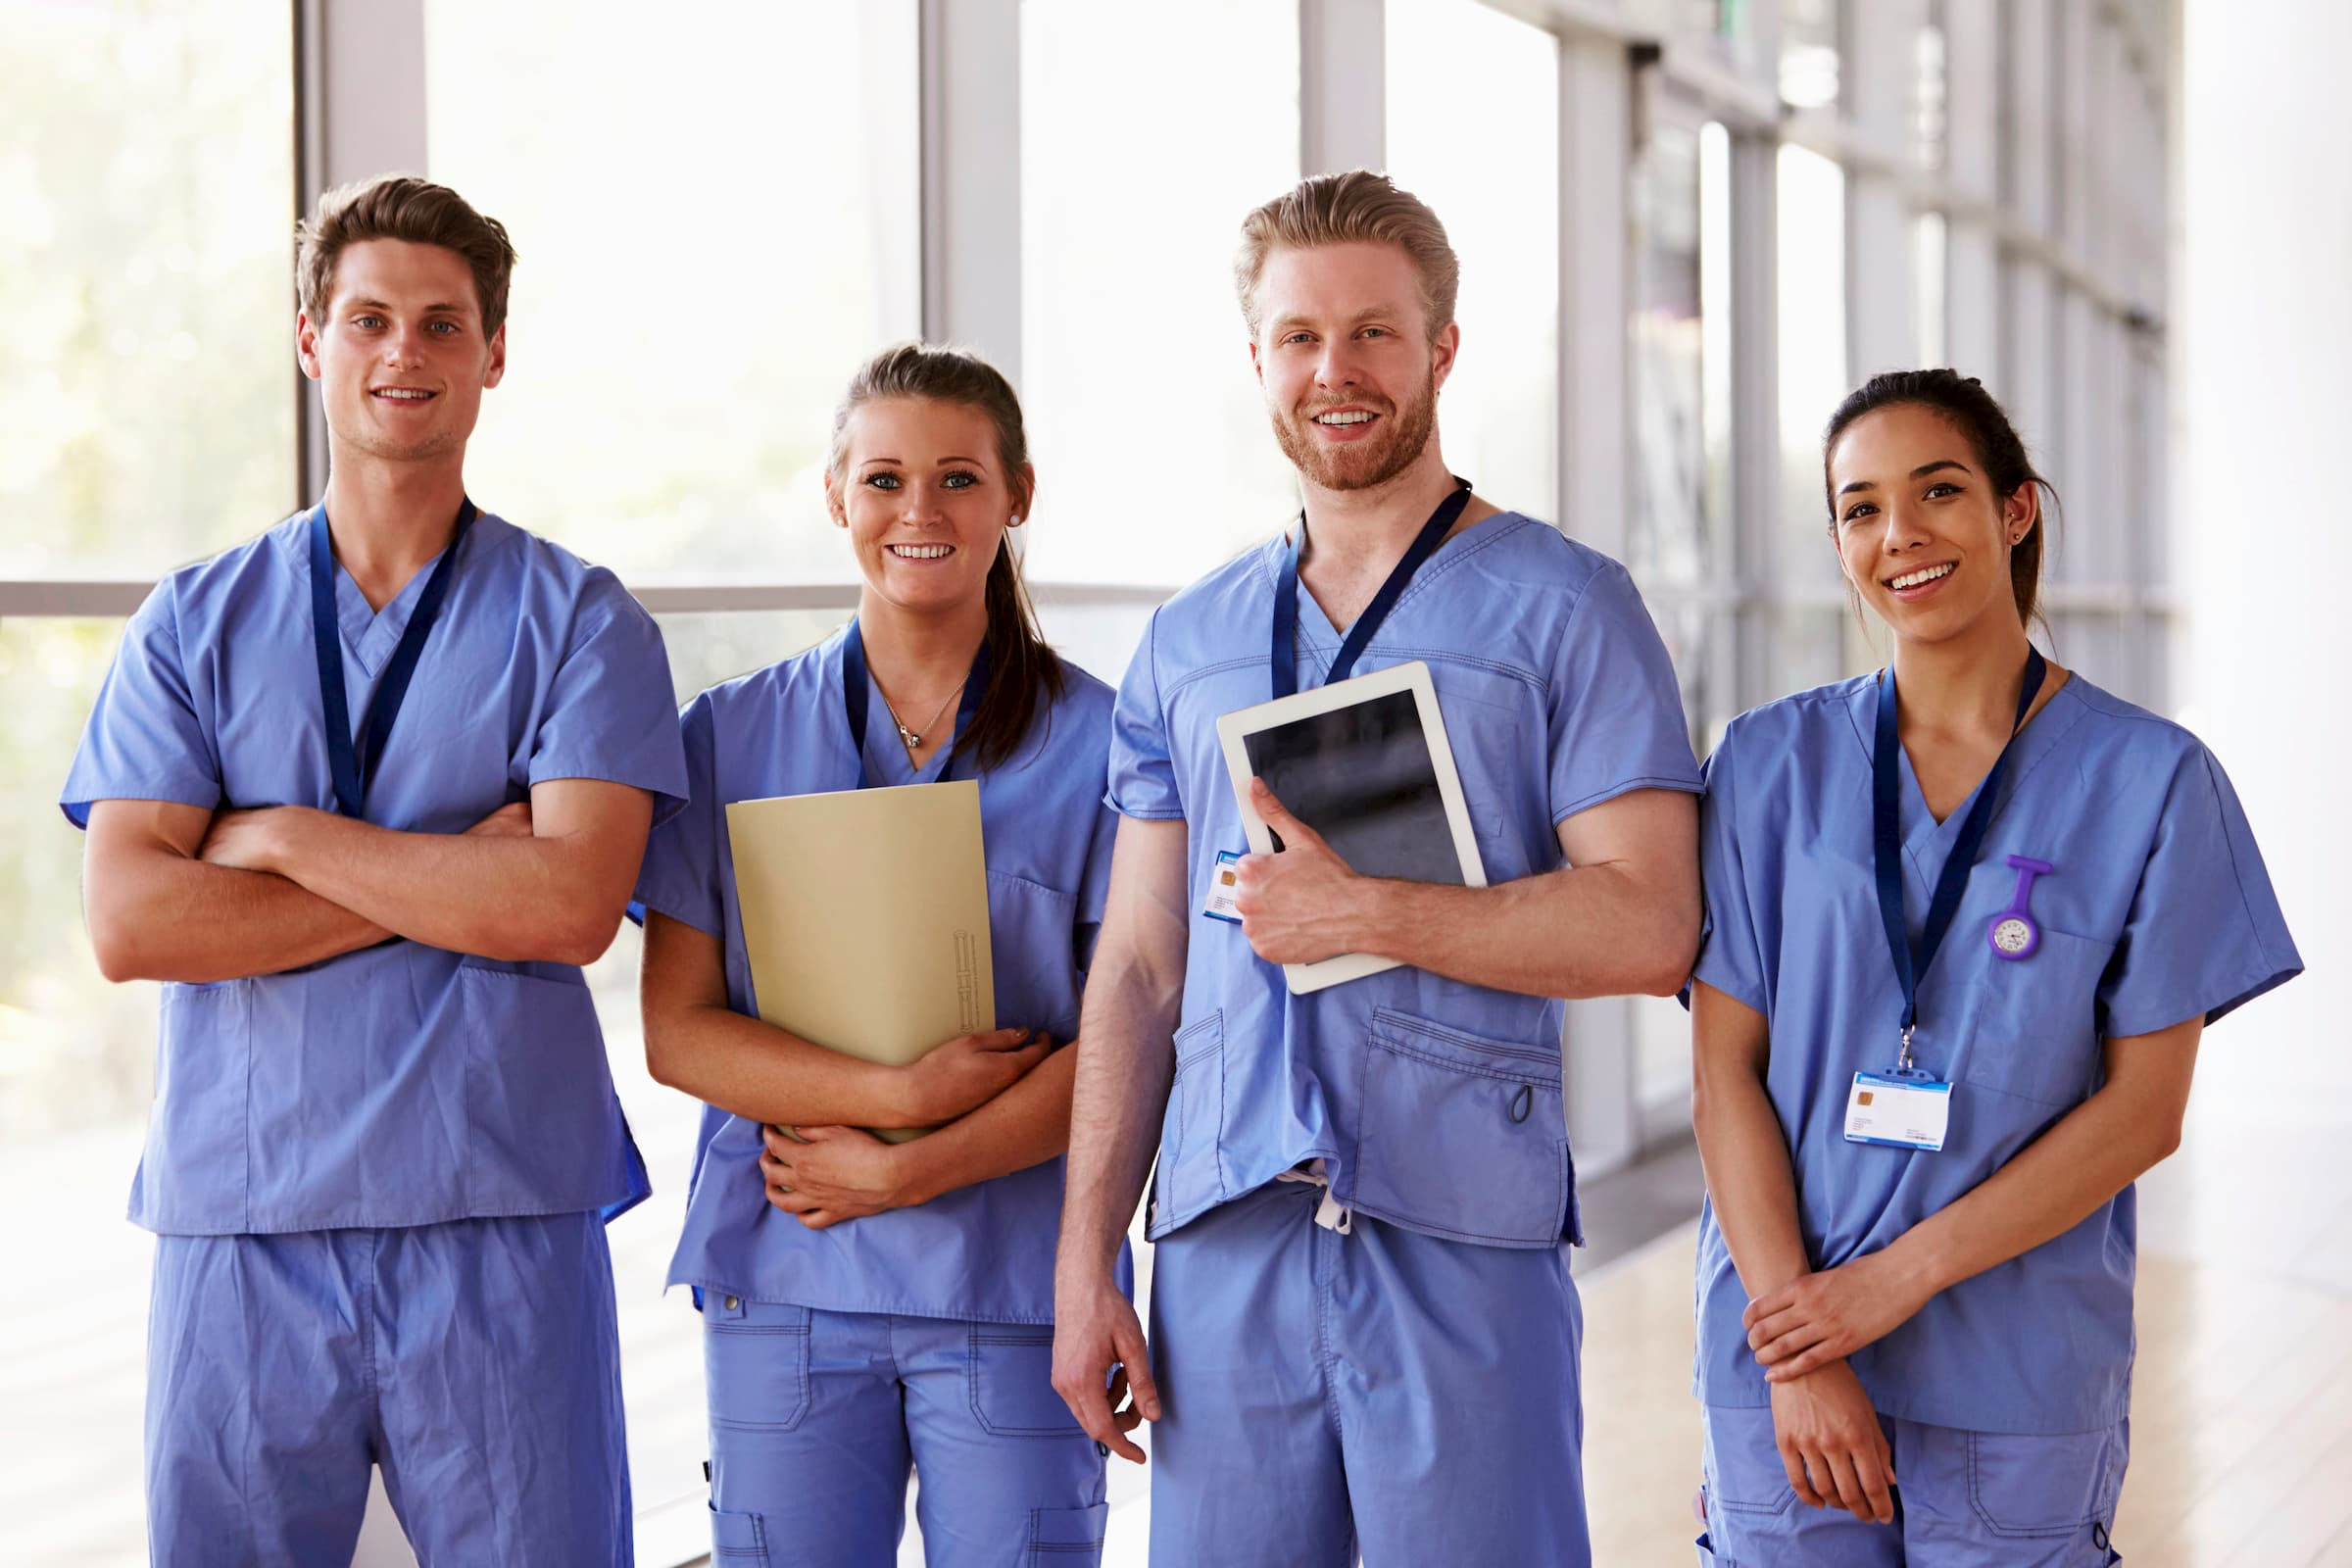 group of nurses or med students with badges and notes in hand showing medical careers help wanted job opportunities